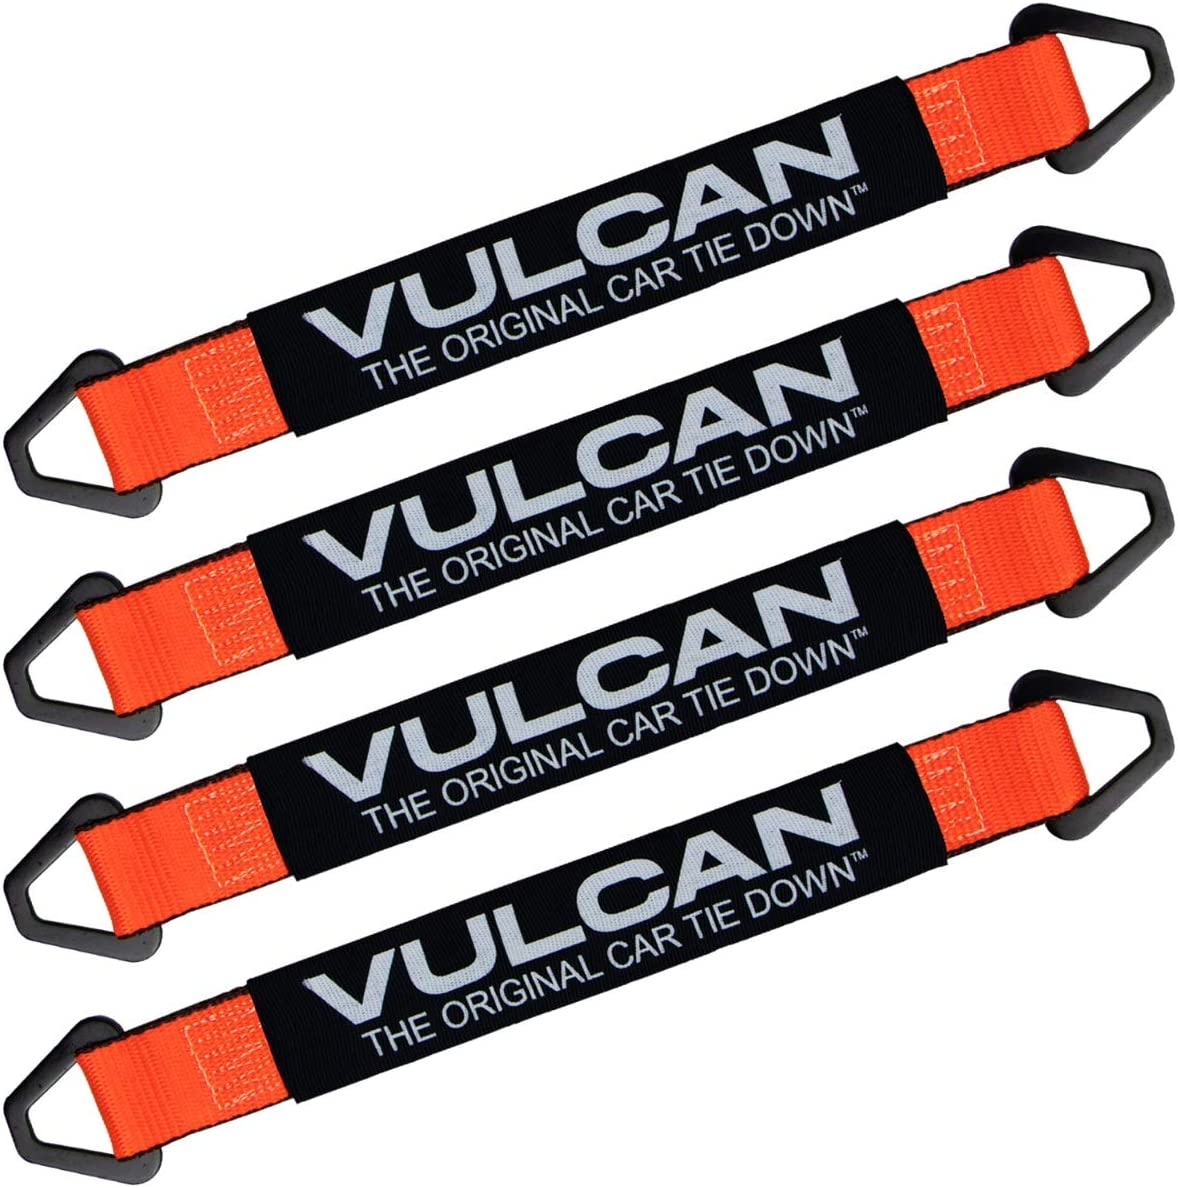 4 PROSeries VULCAN Complete Axle Strap Tie Down Kit with Snap Hook Ratchet Straps 22 Axle Straps, Includes 4 4 36 Axle Straps 8 Snap Hook Ratchet Straps and